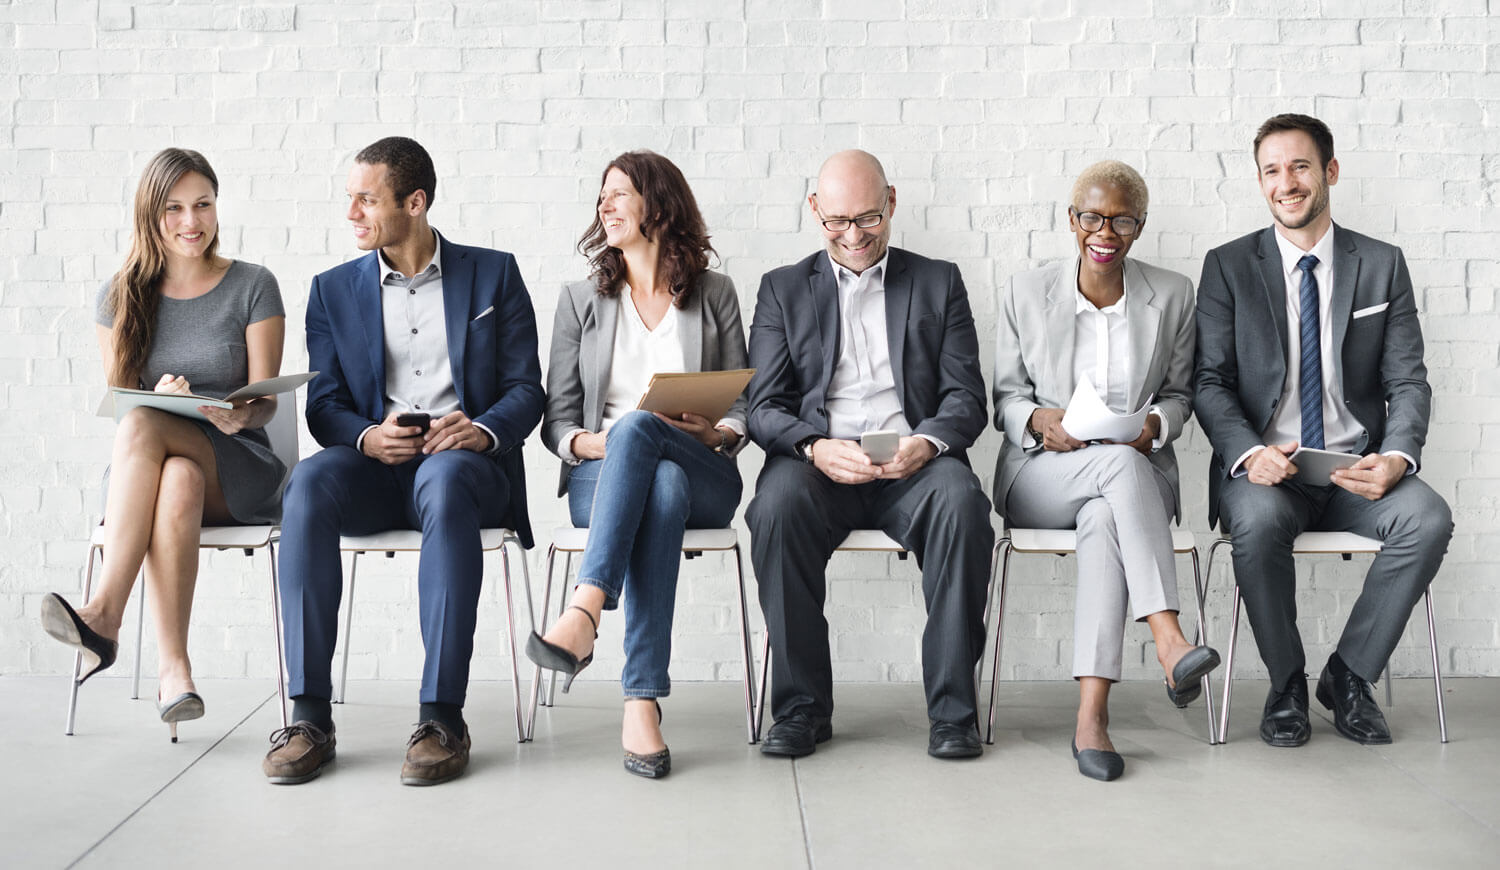 People sitting on chairs waiting for their turn for a recruiting interview for a new job